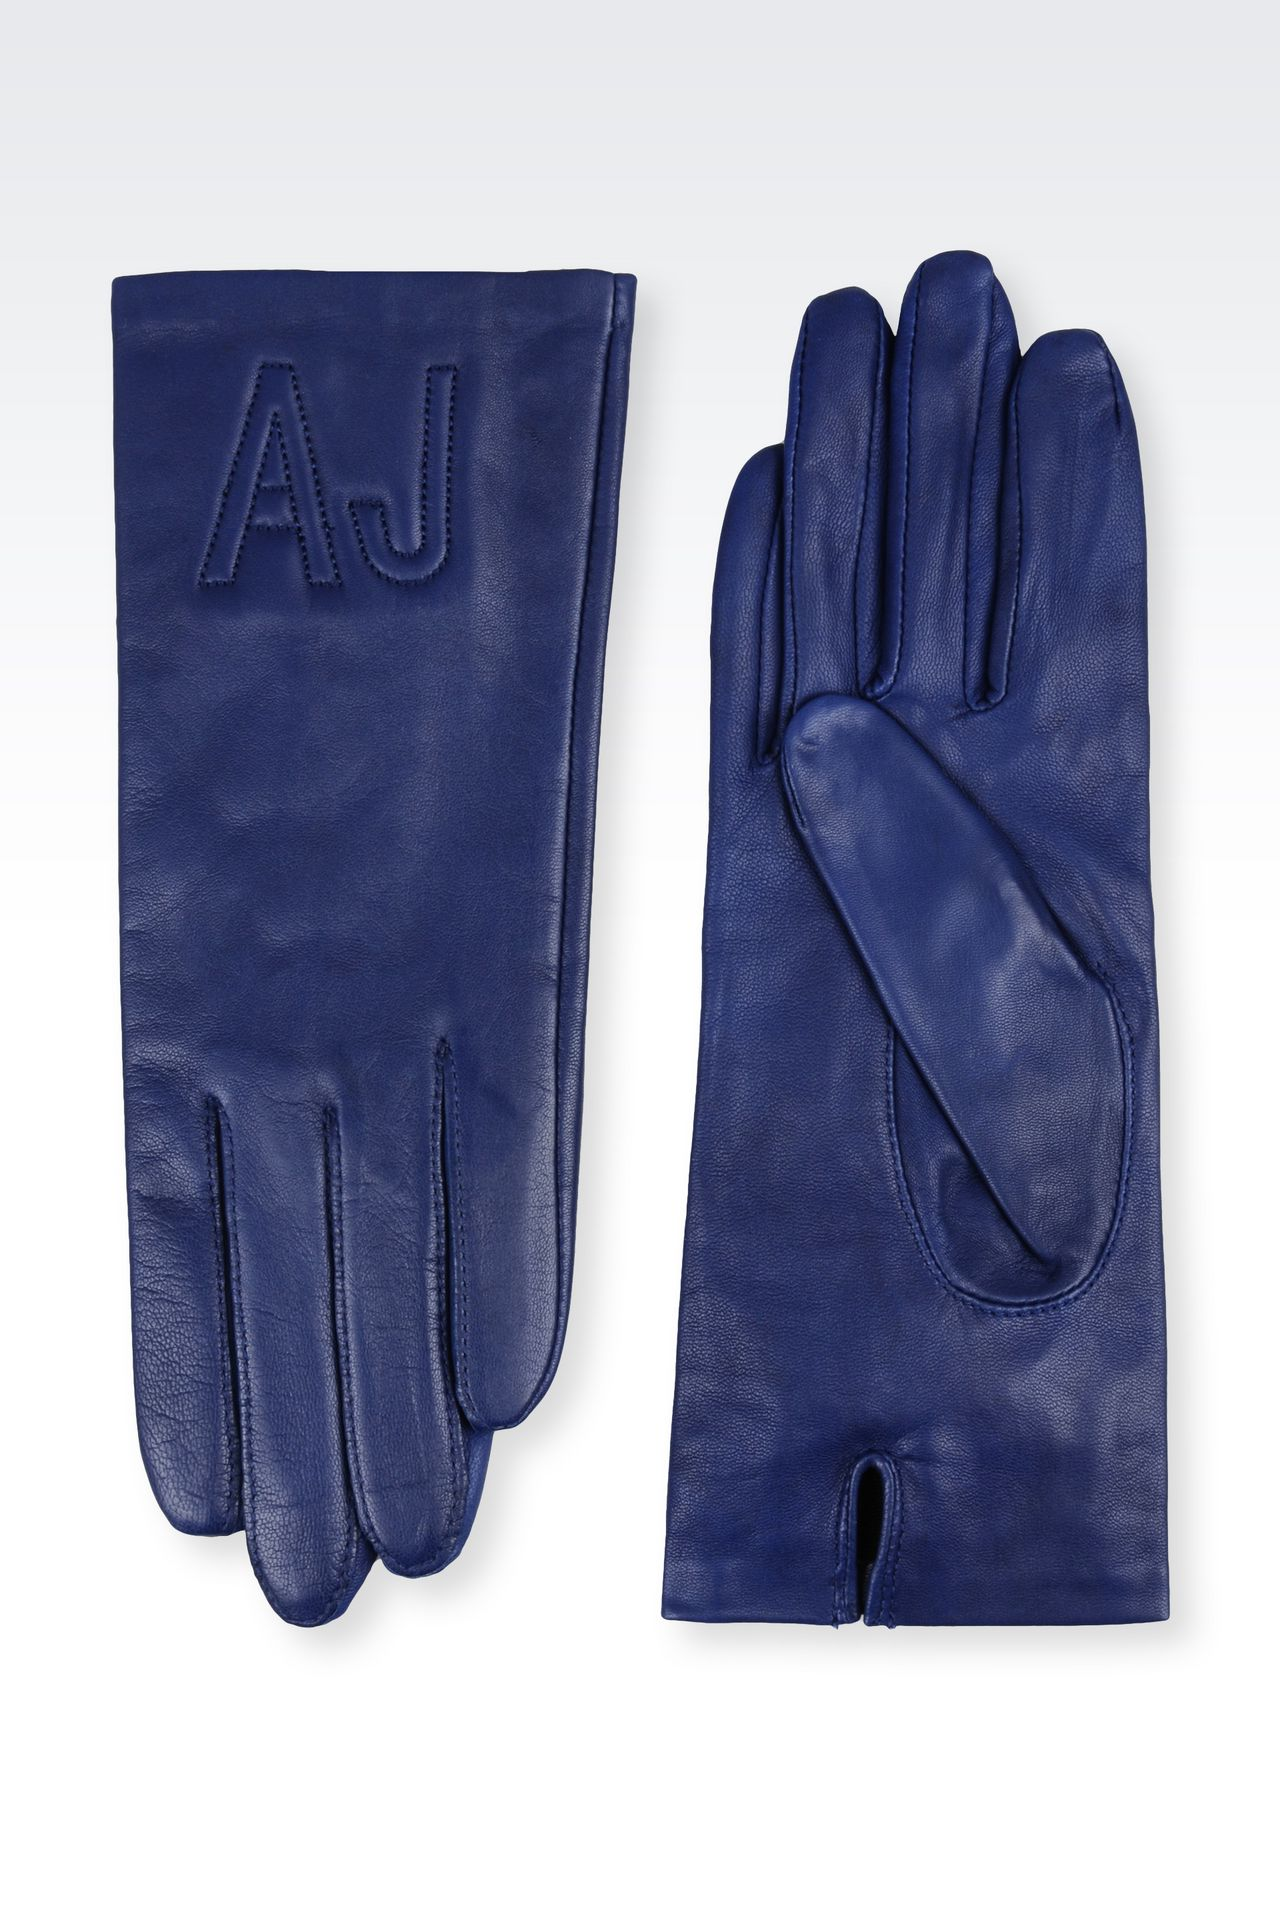 Armani exchange black leather gloves - Napa Leather Gloves Gloves Women By Armani 0